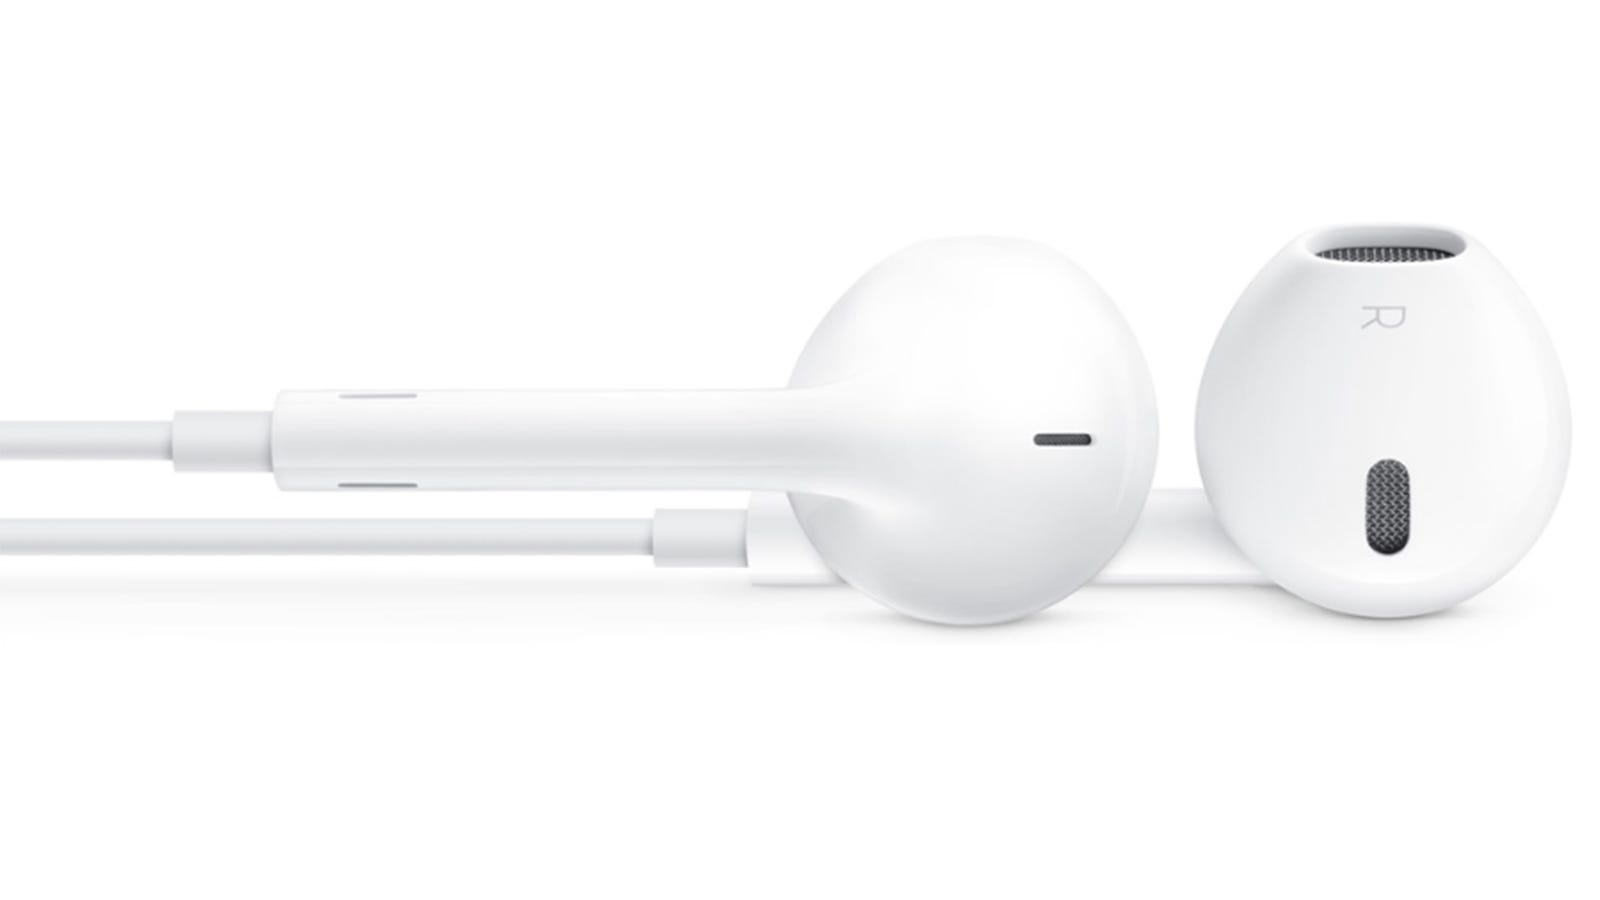 zte earbuds - Apple's Rolling Out New Headphones That Might Not Be Crap